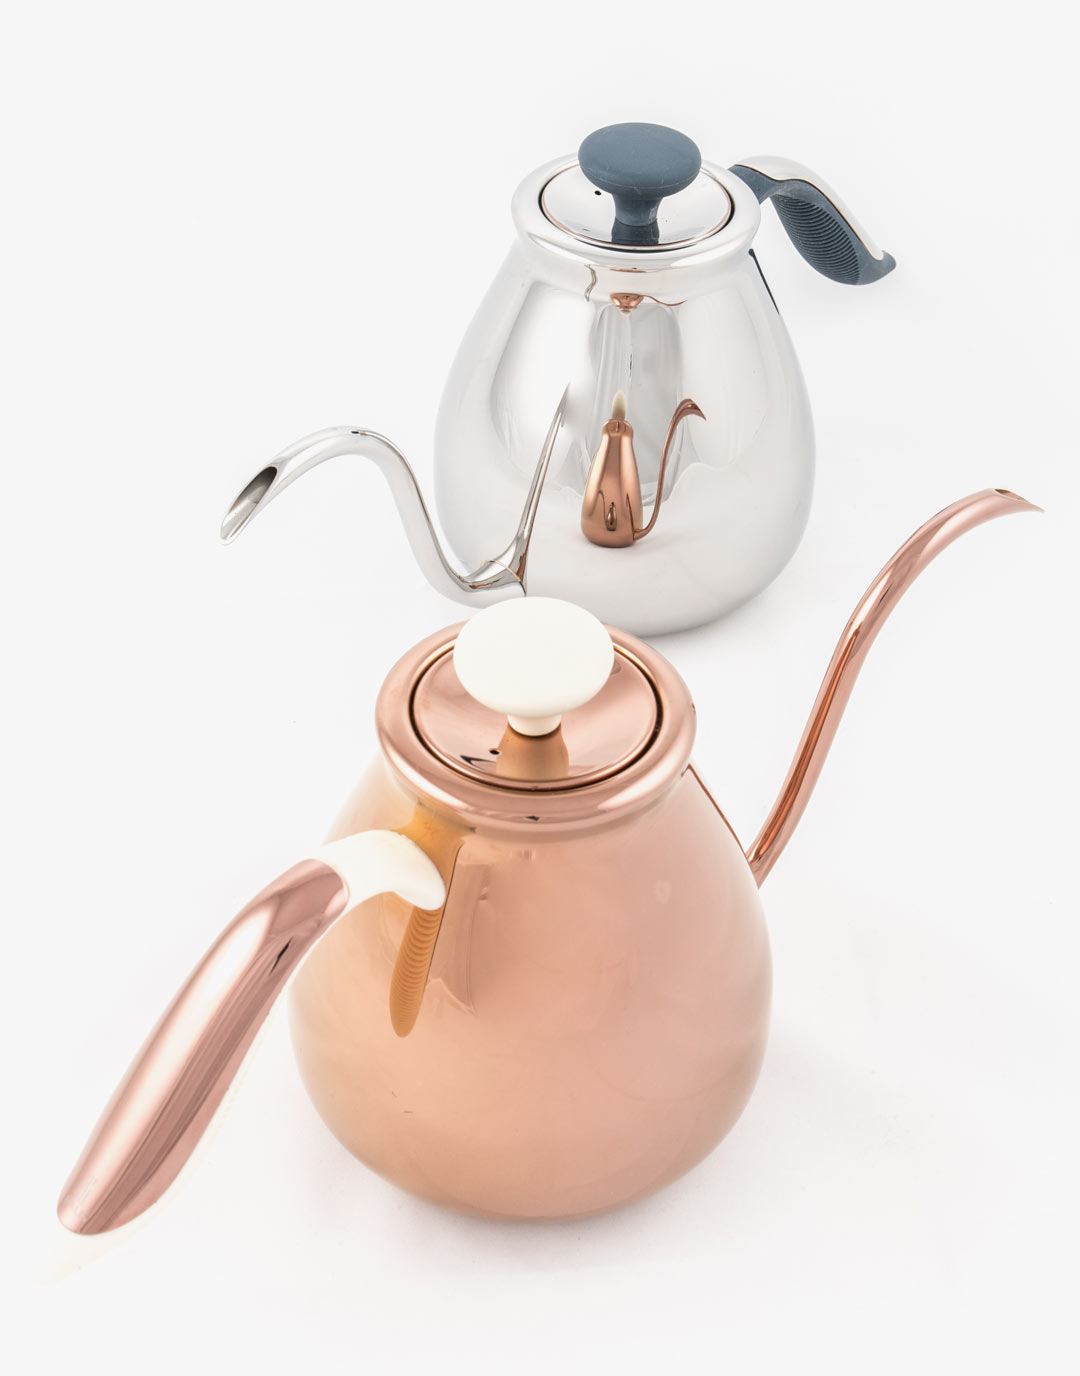 PAUS Pour-Over Kettle